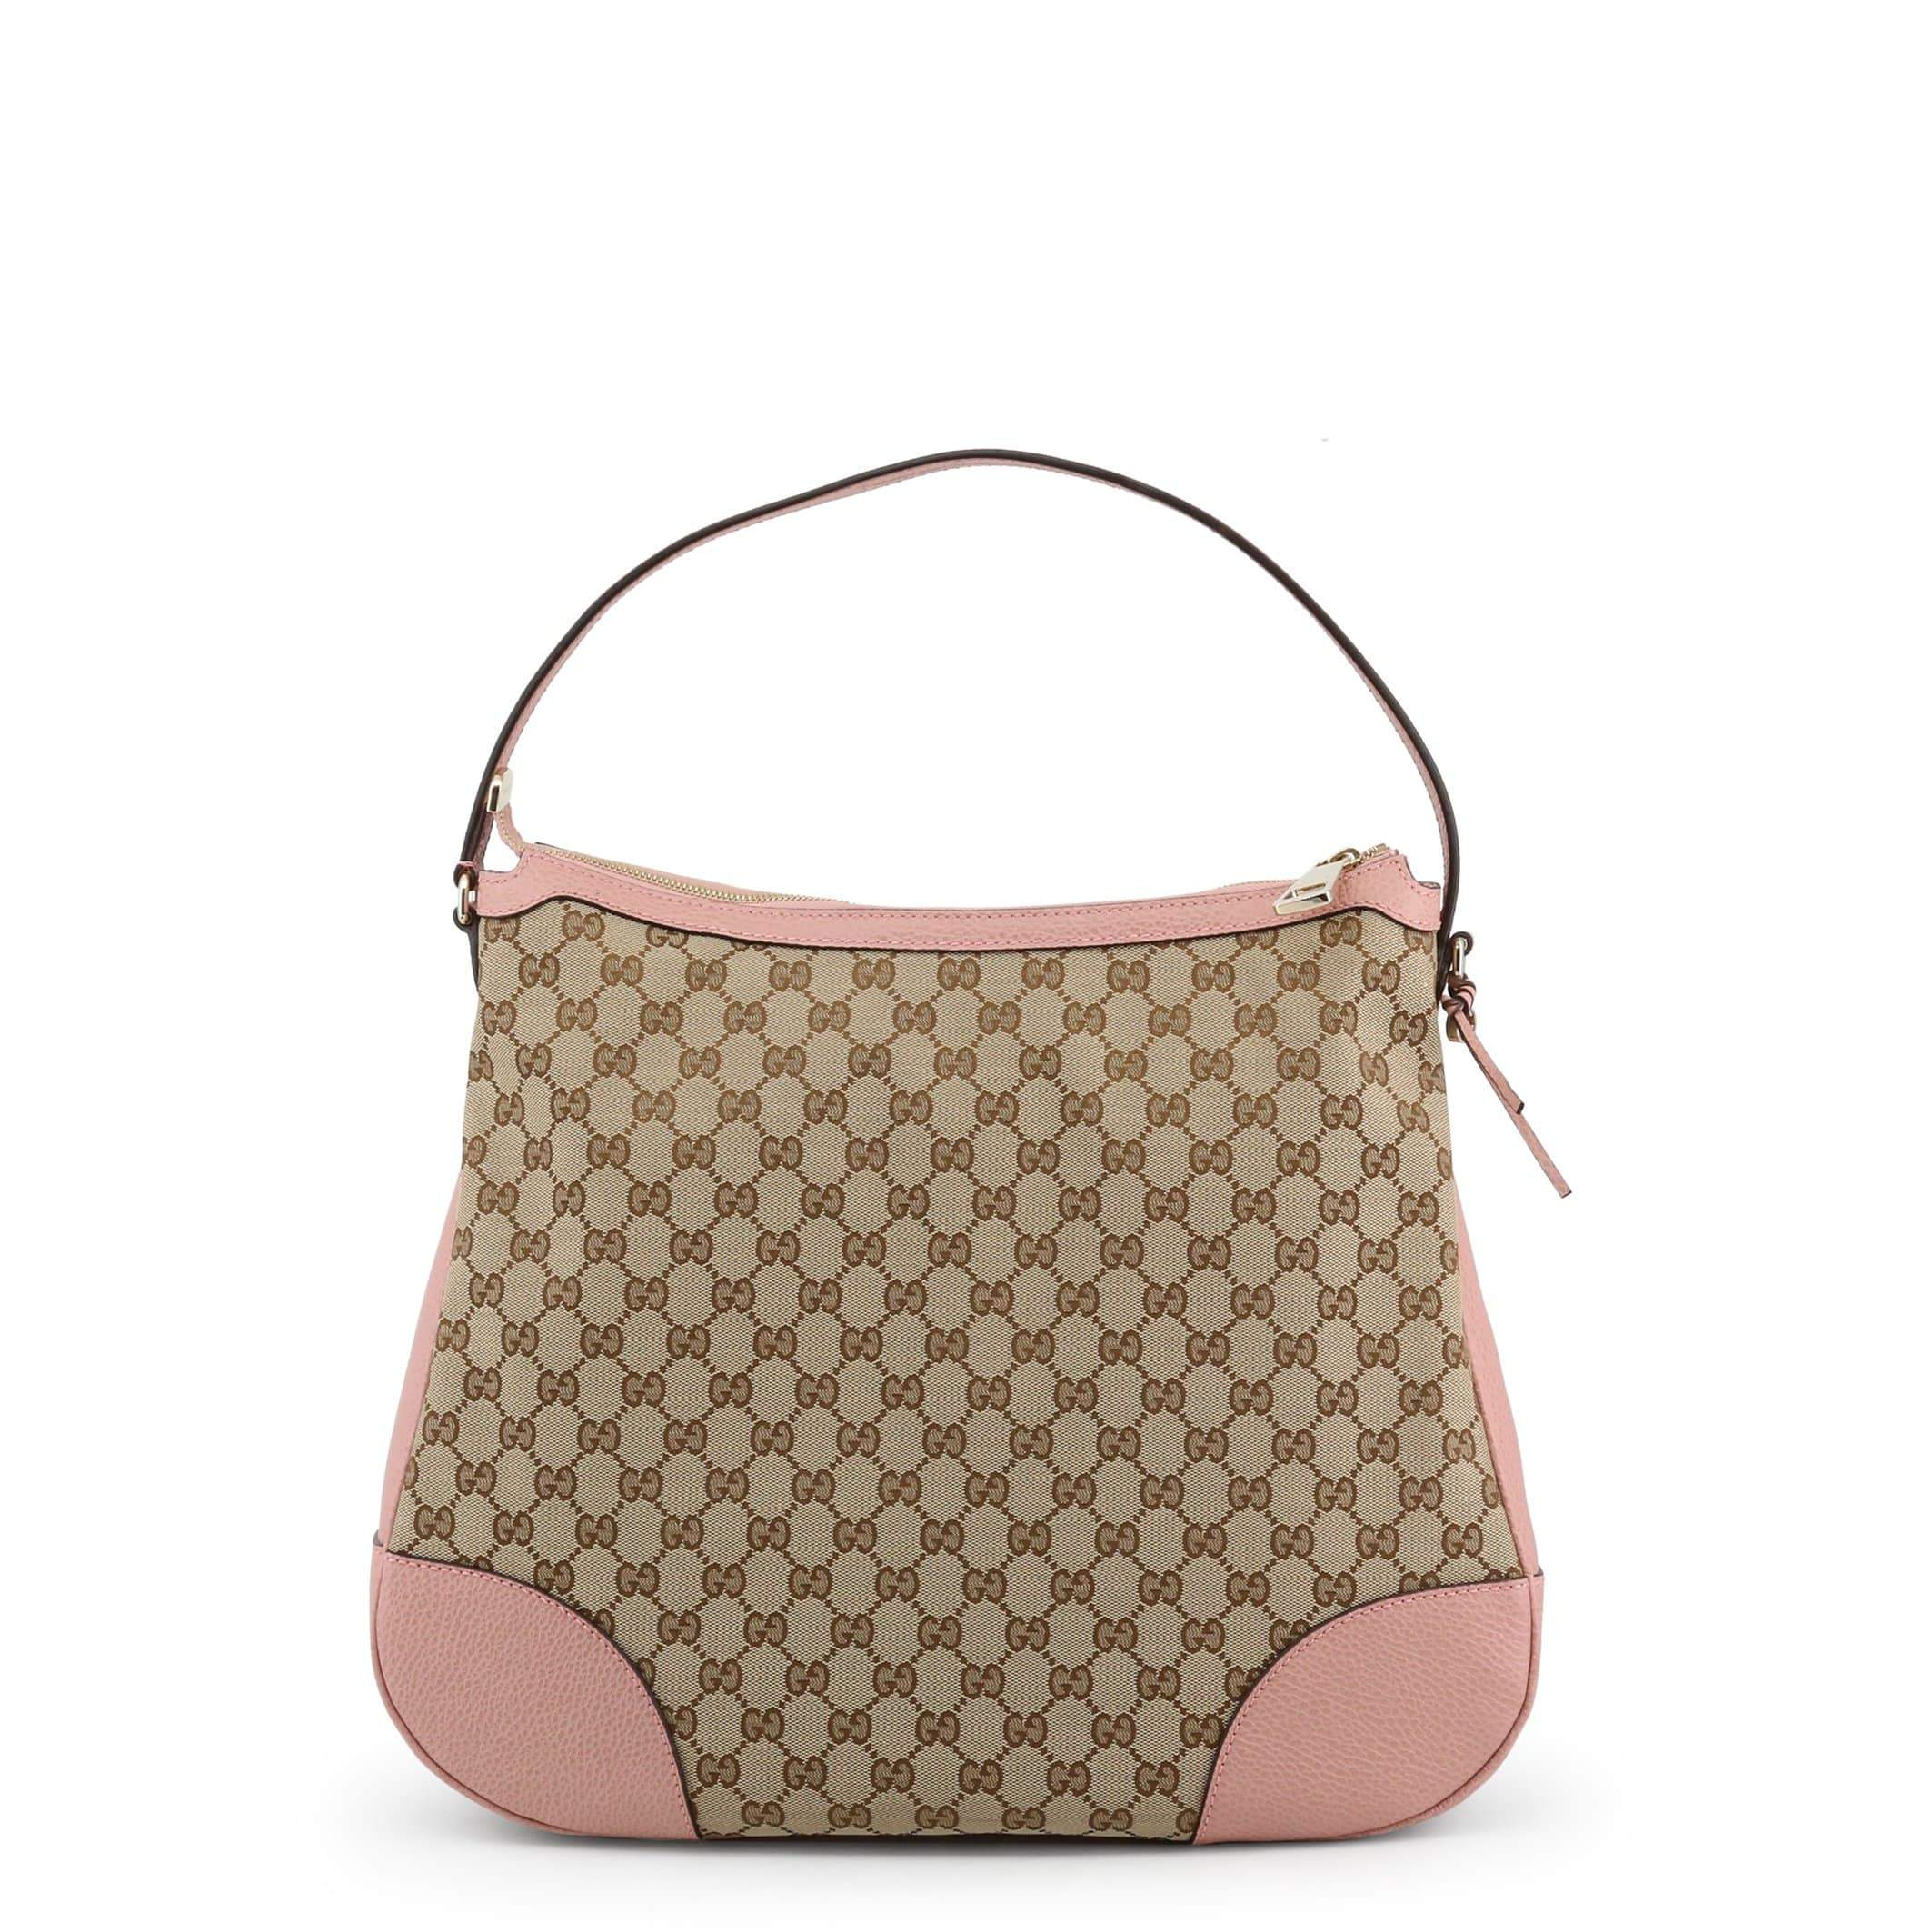 Gucci Bags Shoulder bags brown-1 / NOSIZE Gucci - 449244_KY9LG